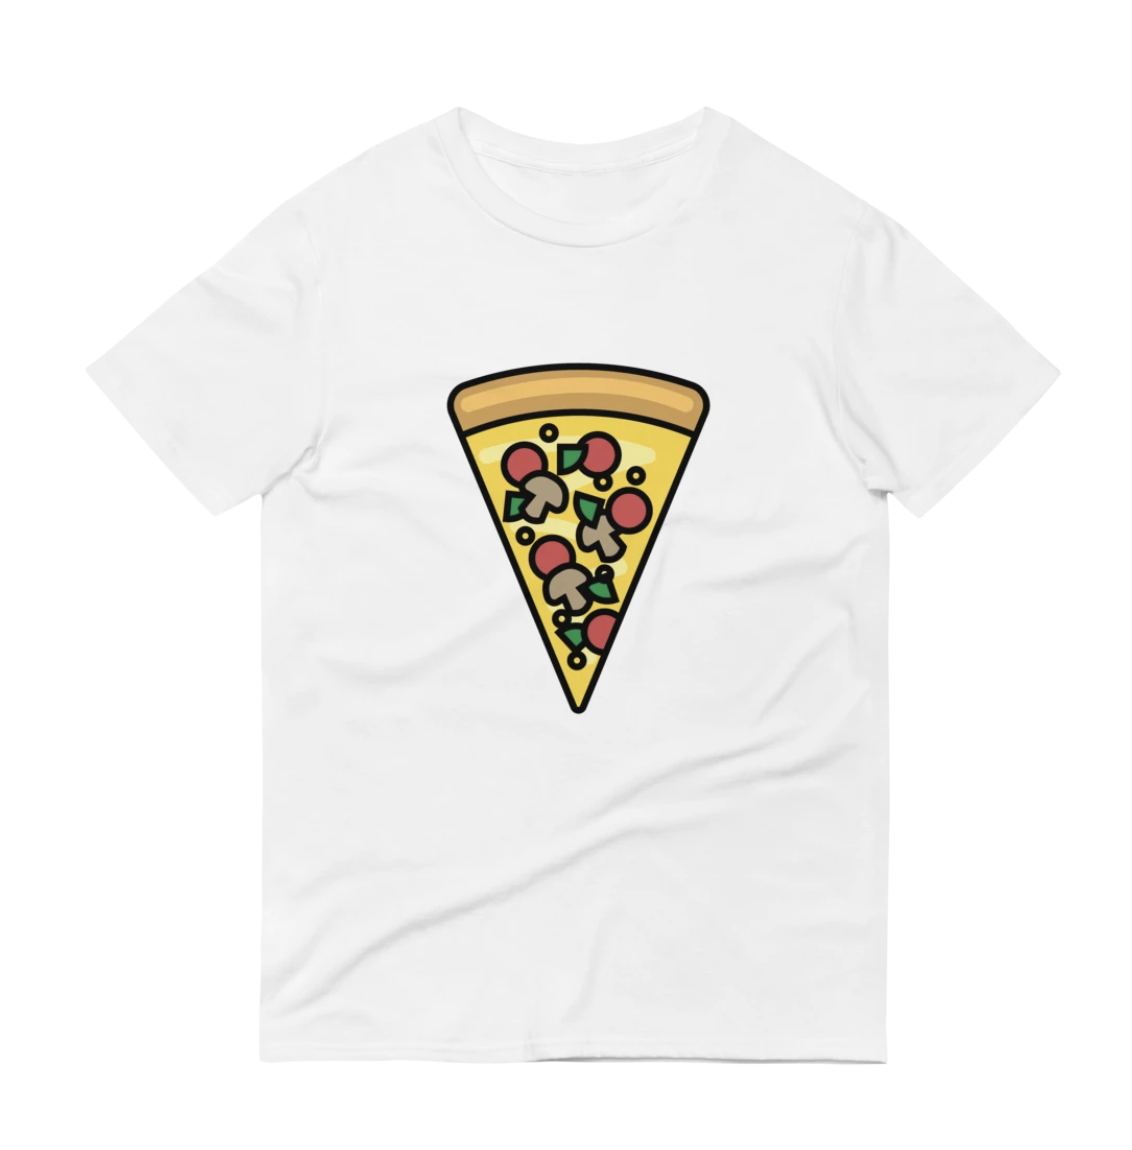 A white T-shirt with a supreme pizza design on the front